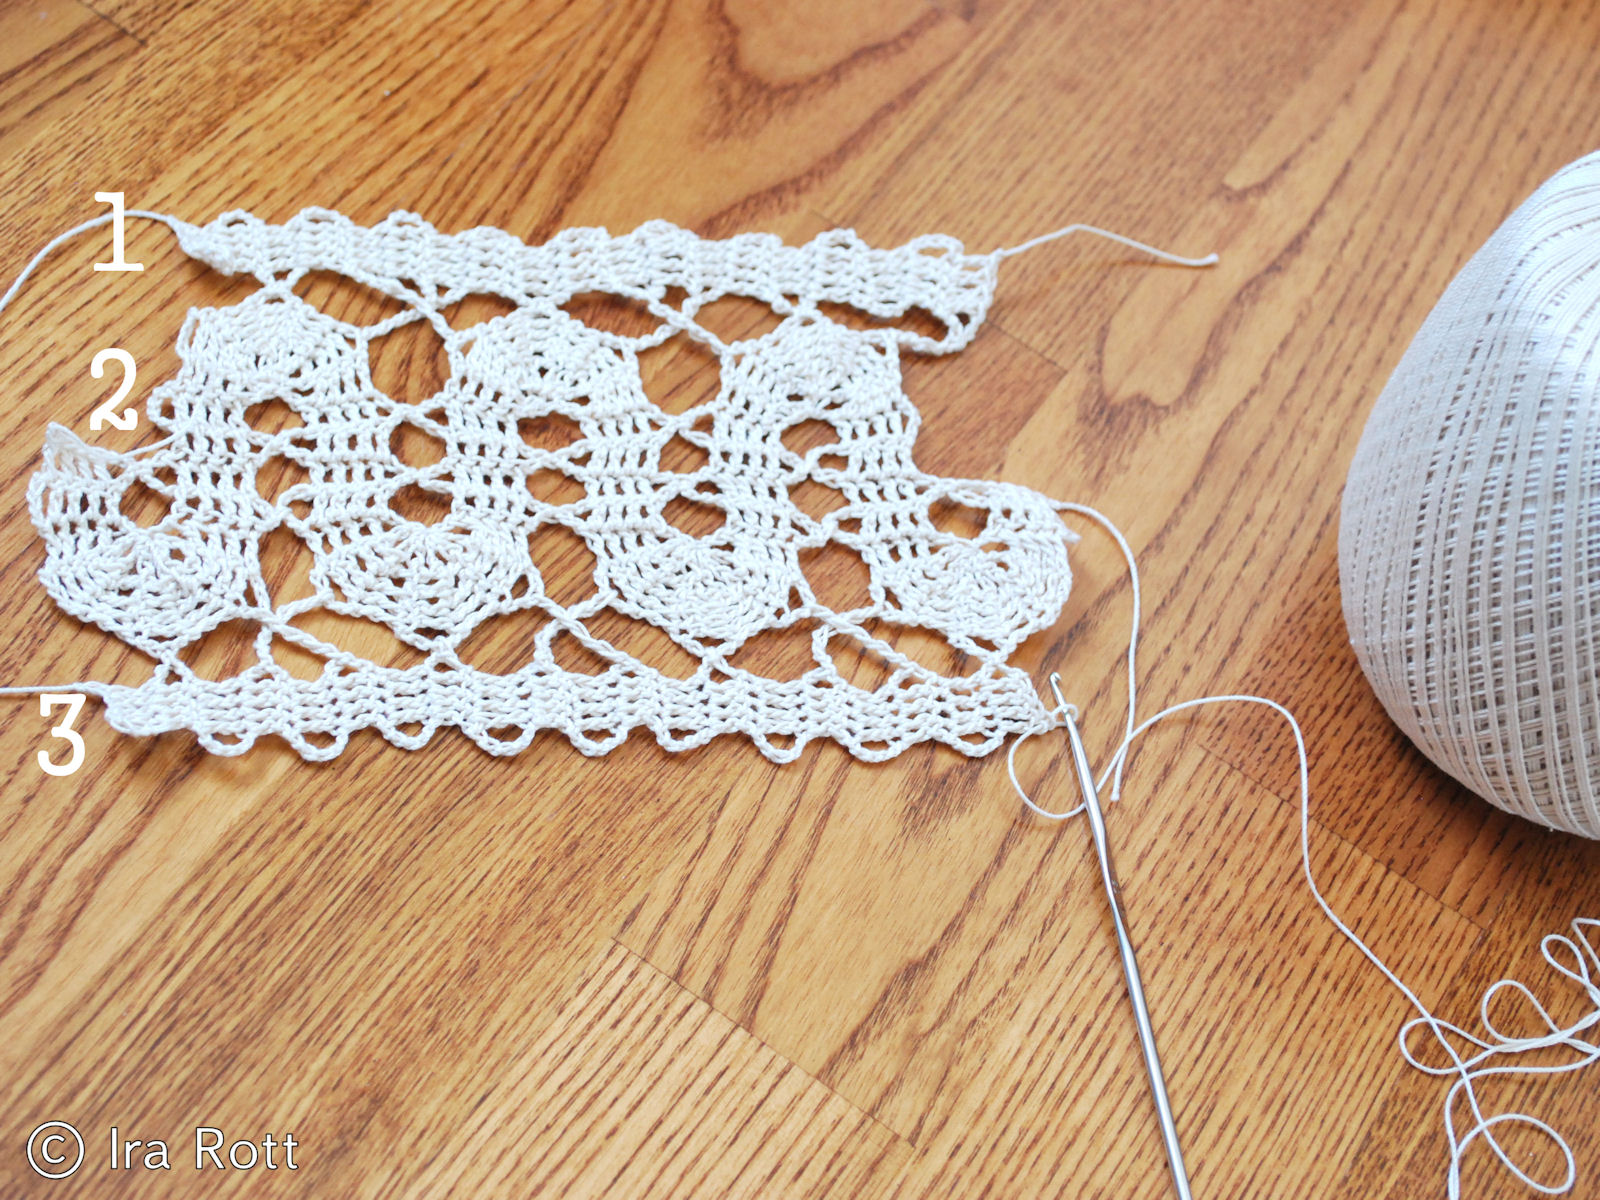 Crocheting Lace : Fashion Crochet Design By Ira Rott: Bruges Lace Crochet - Old ...